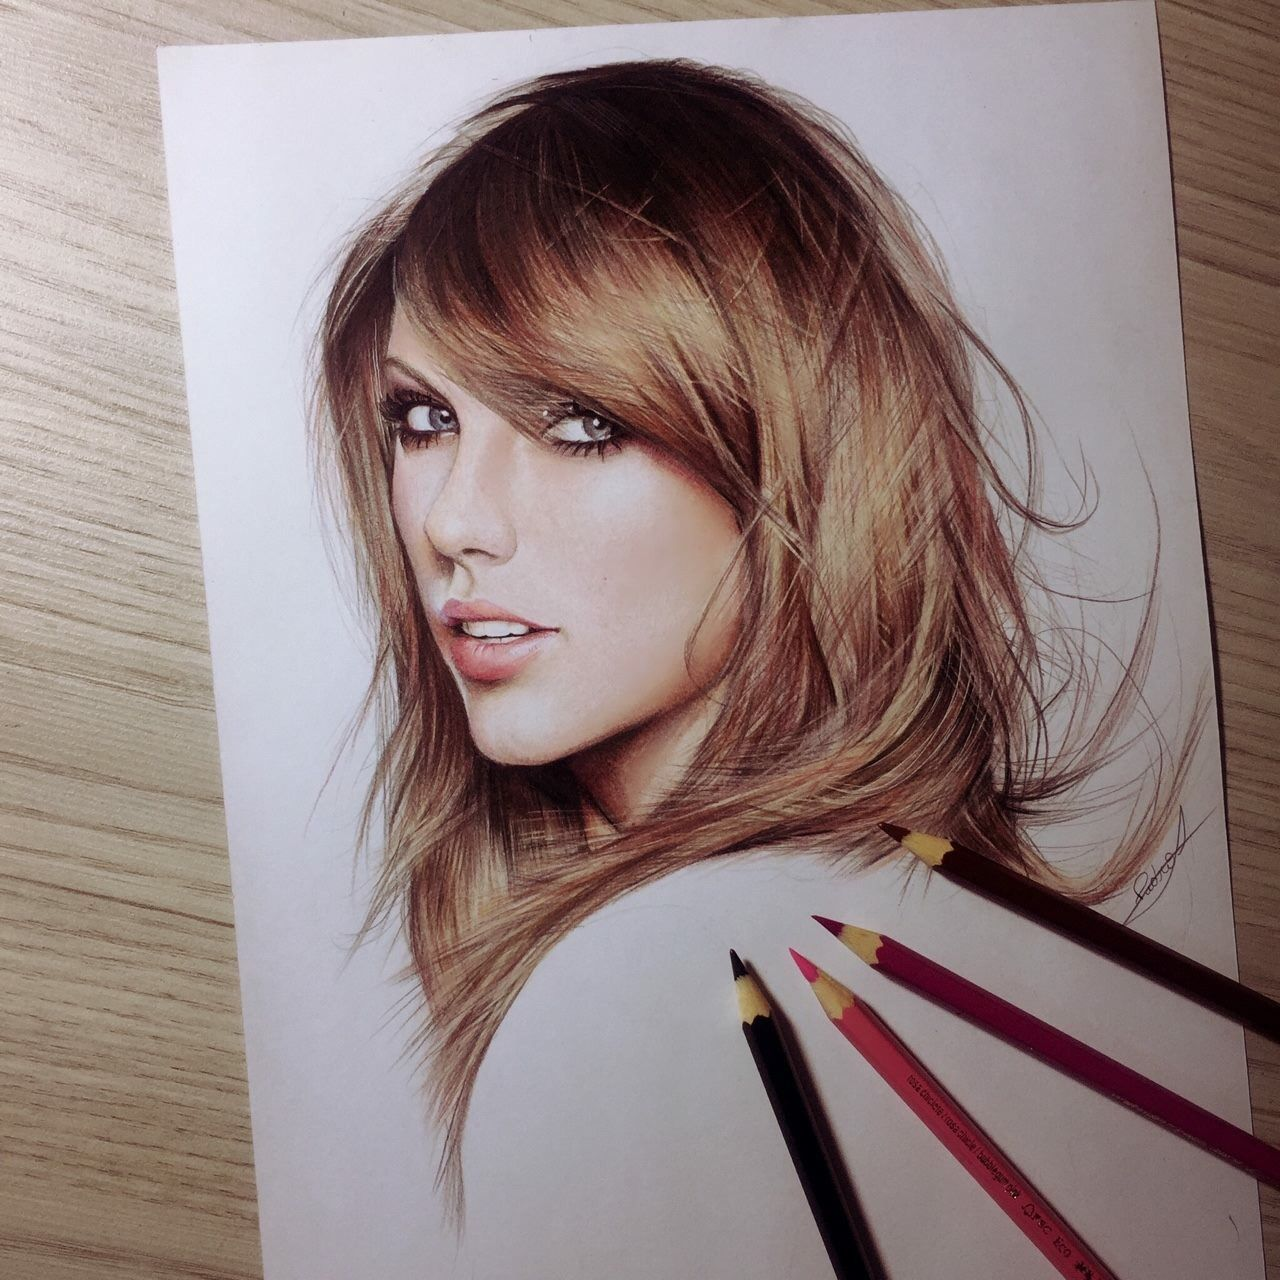 That is one cool Taylor swift drawing | My favorite paintings and ...